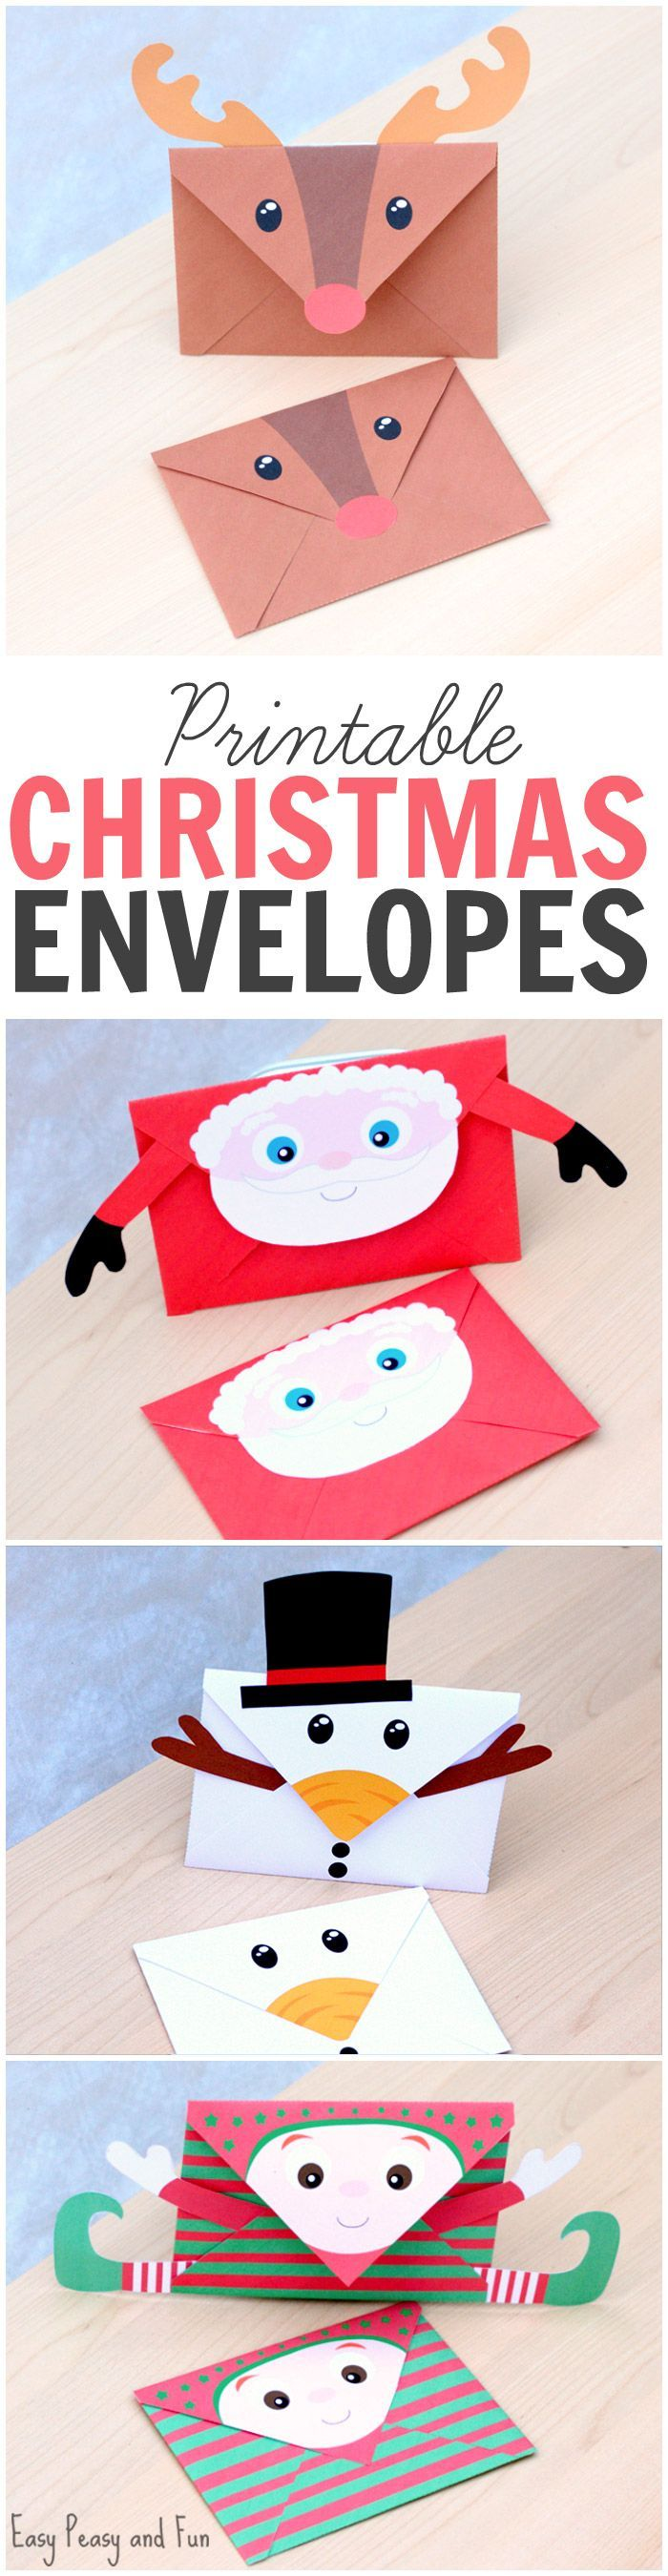 Printable Christmas Envelopes | Schulbastelideen | Pinterest ...